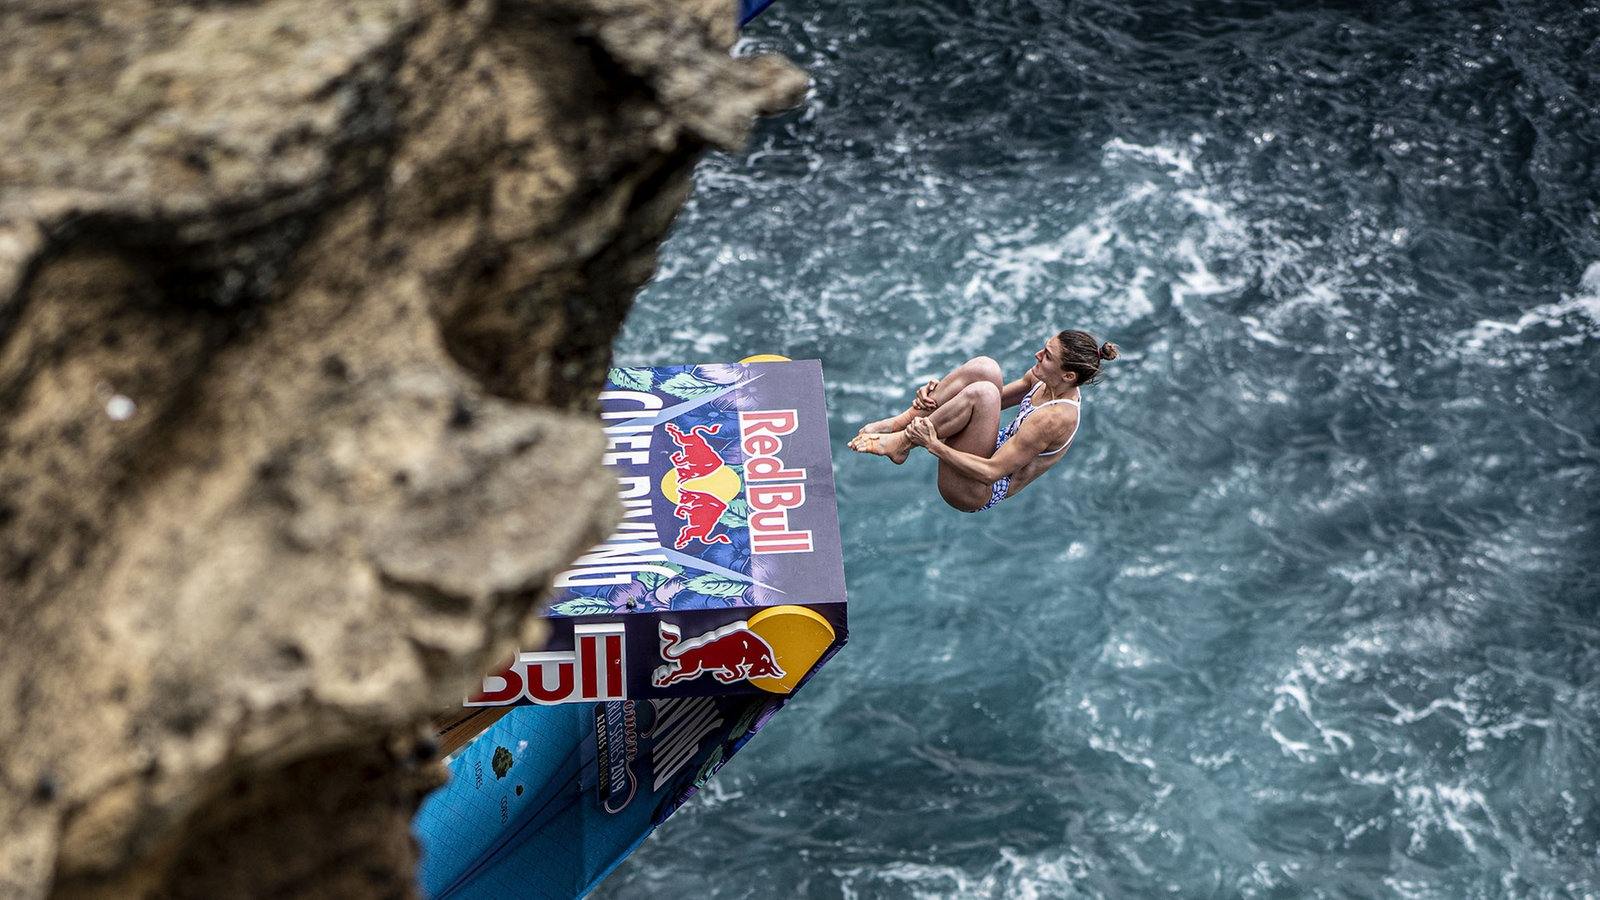 Diver Cliff Iris Schmidbauer - stuck at the other end of the world - more sport